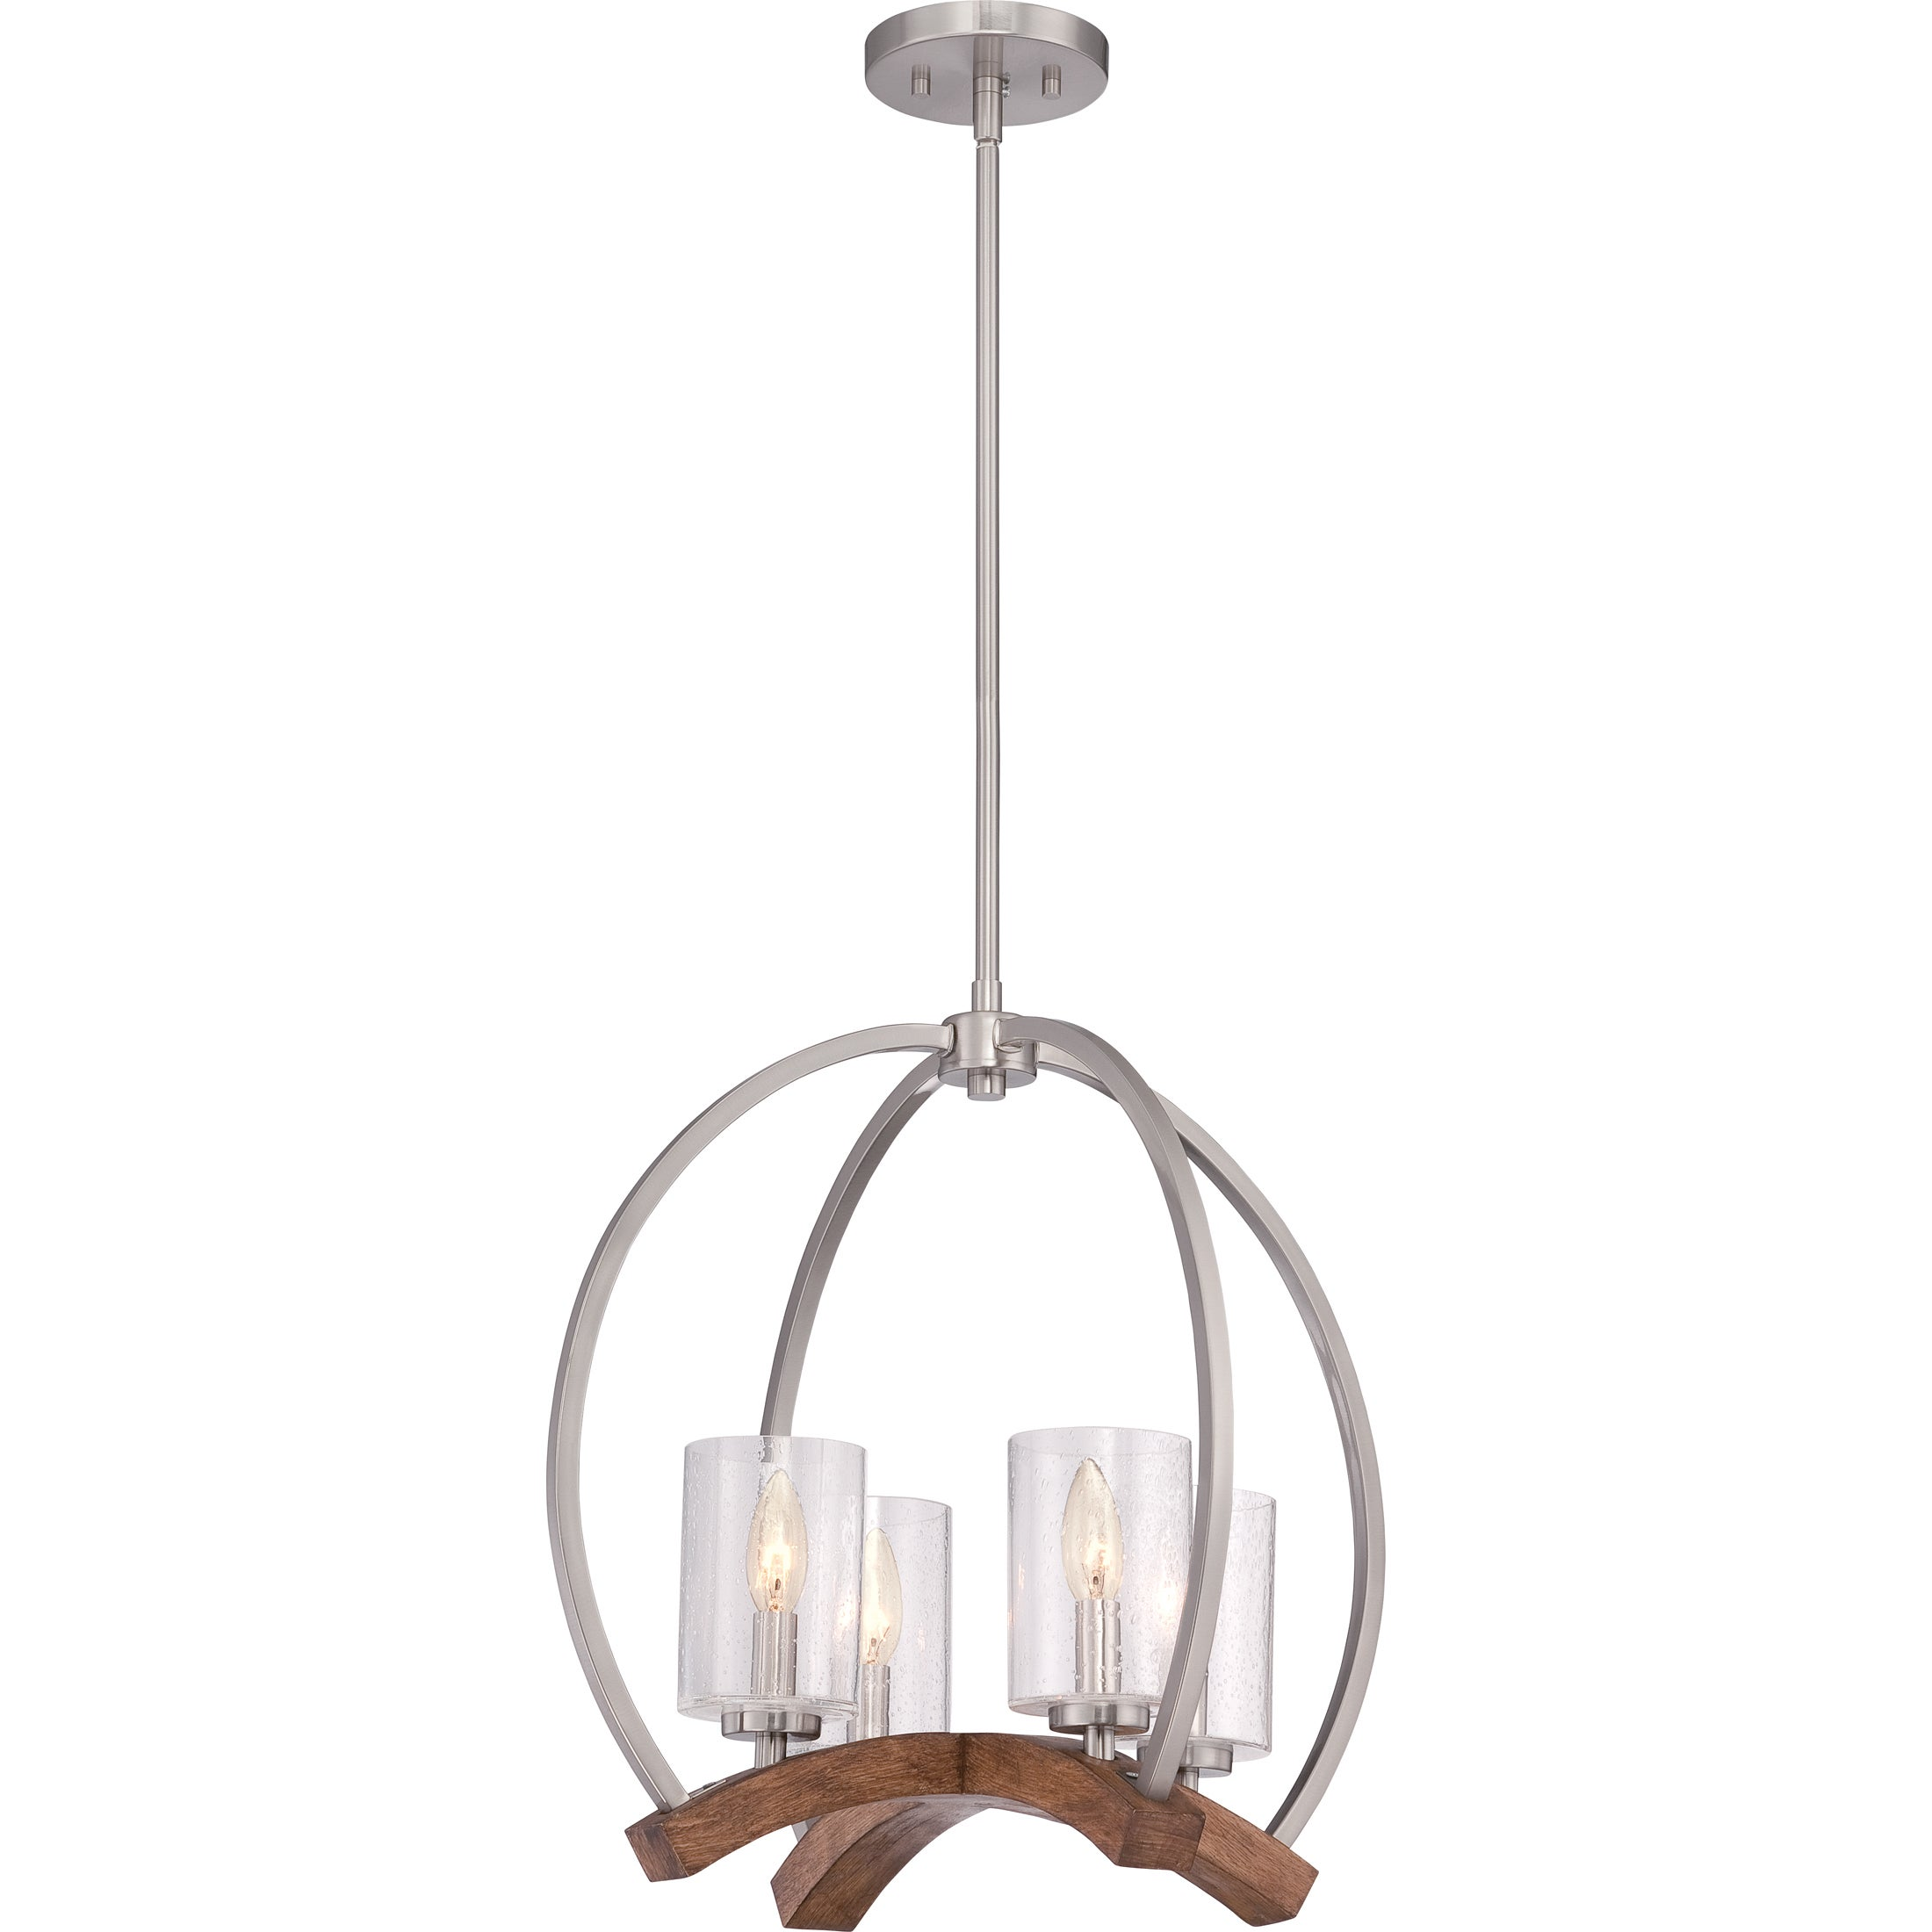 bonson bn globe twisted glass brushed with nickel light multi higgs lighting modern product pendant index chandelier